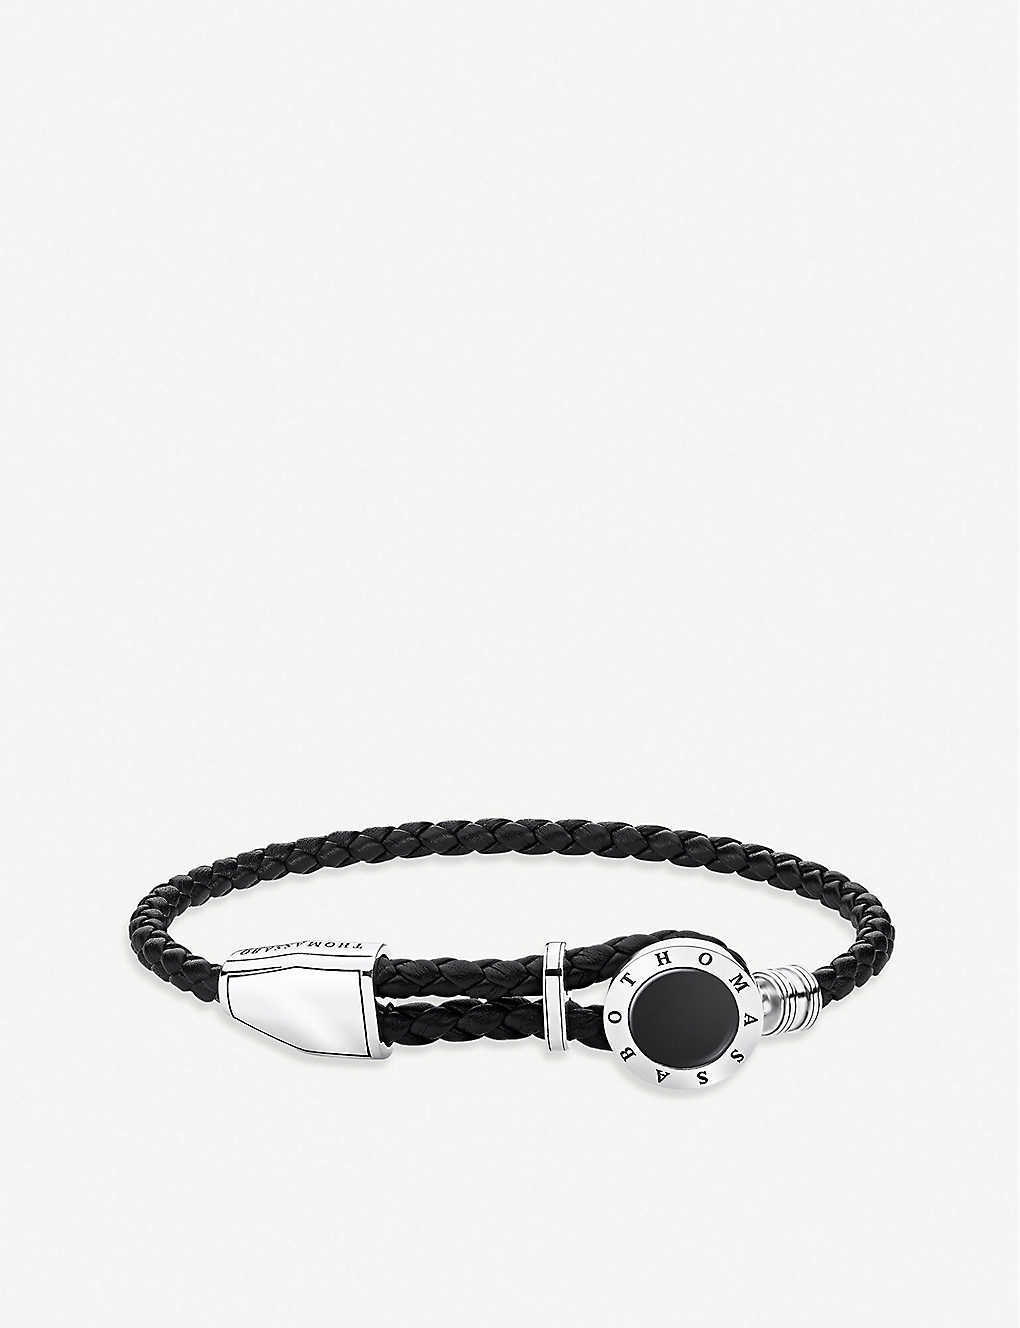 THOMAS SABO: Rebel at Heart sterling silver, onyx and leather bracelet